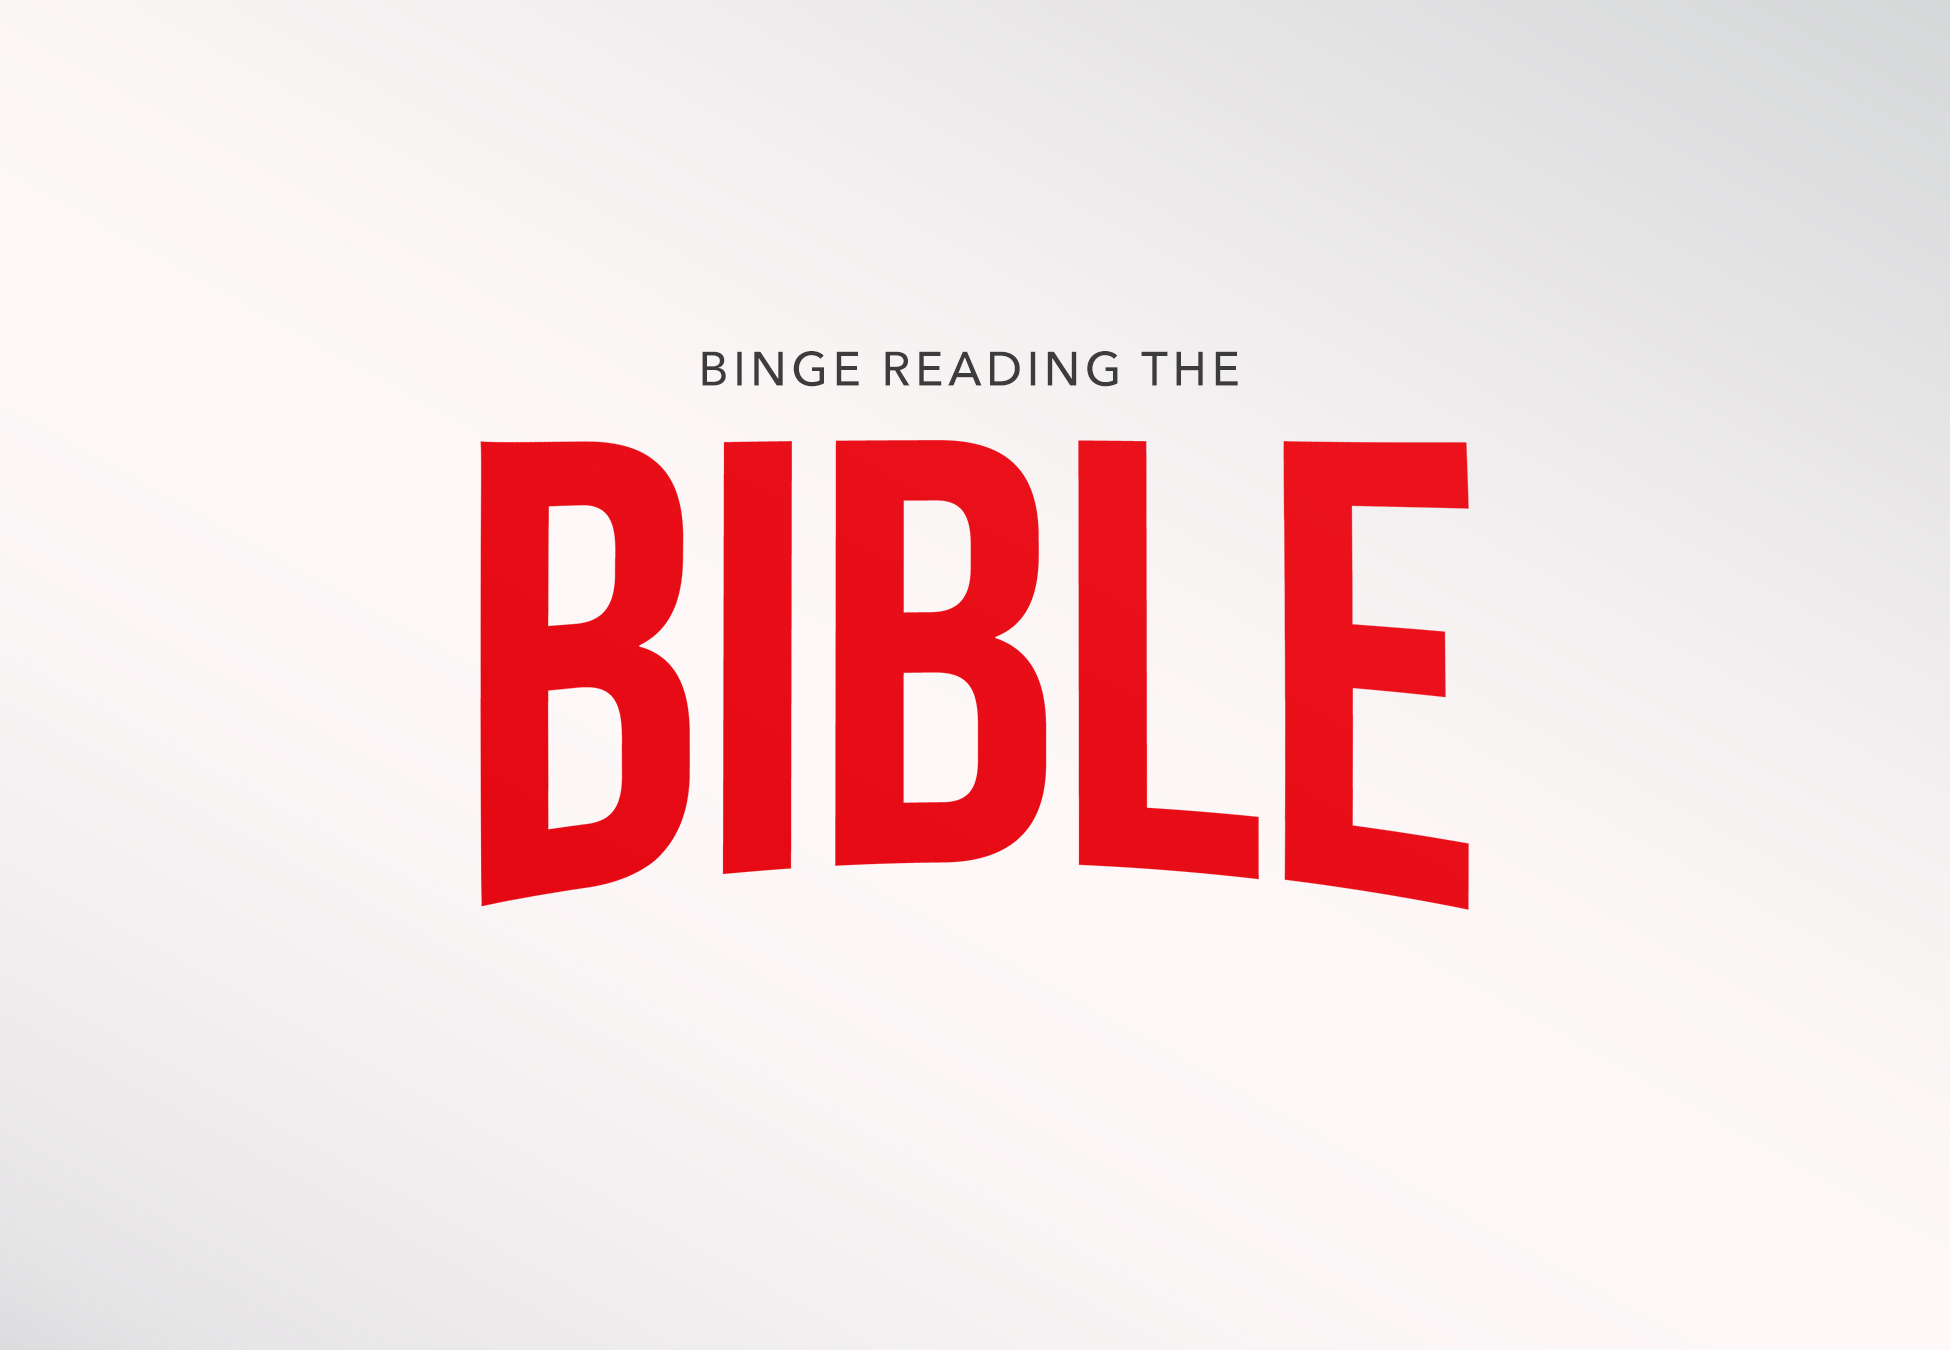 Binge-Reading-The-Bible_Postcard.jpg